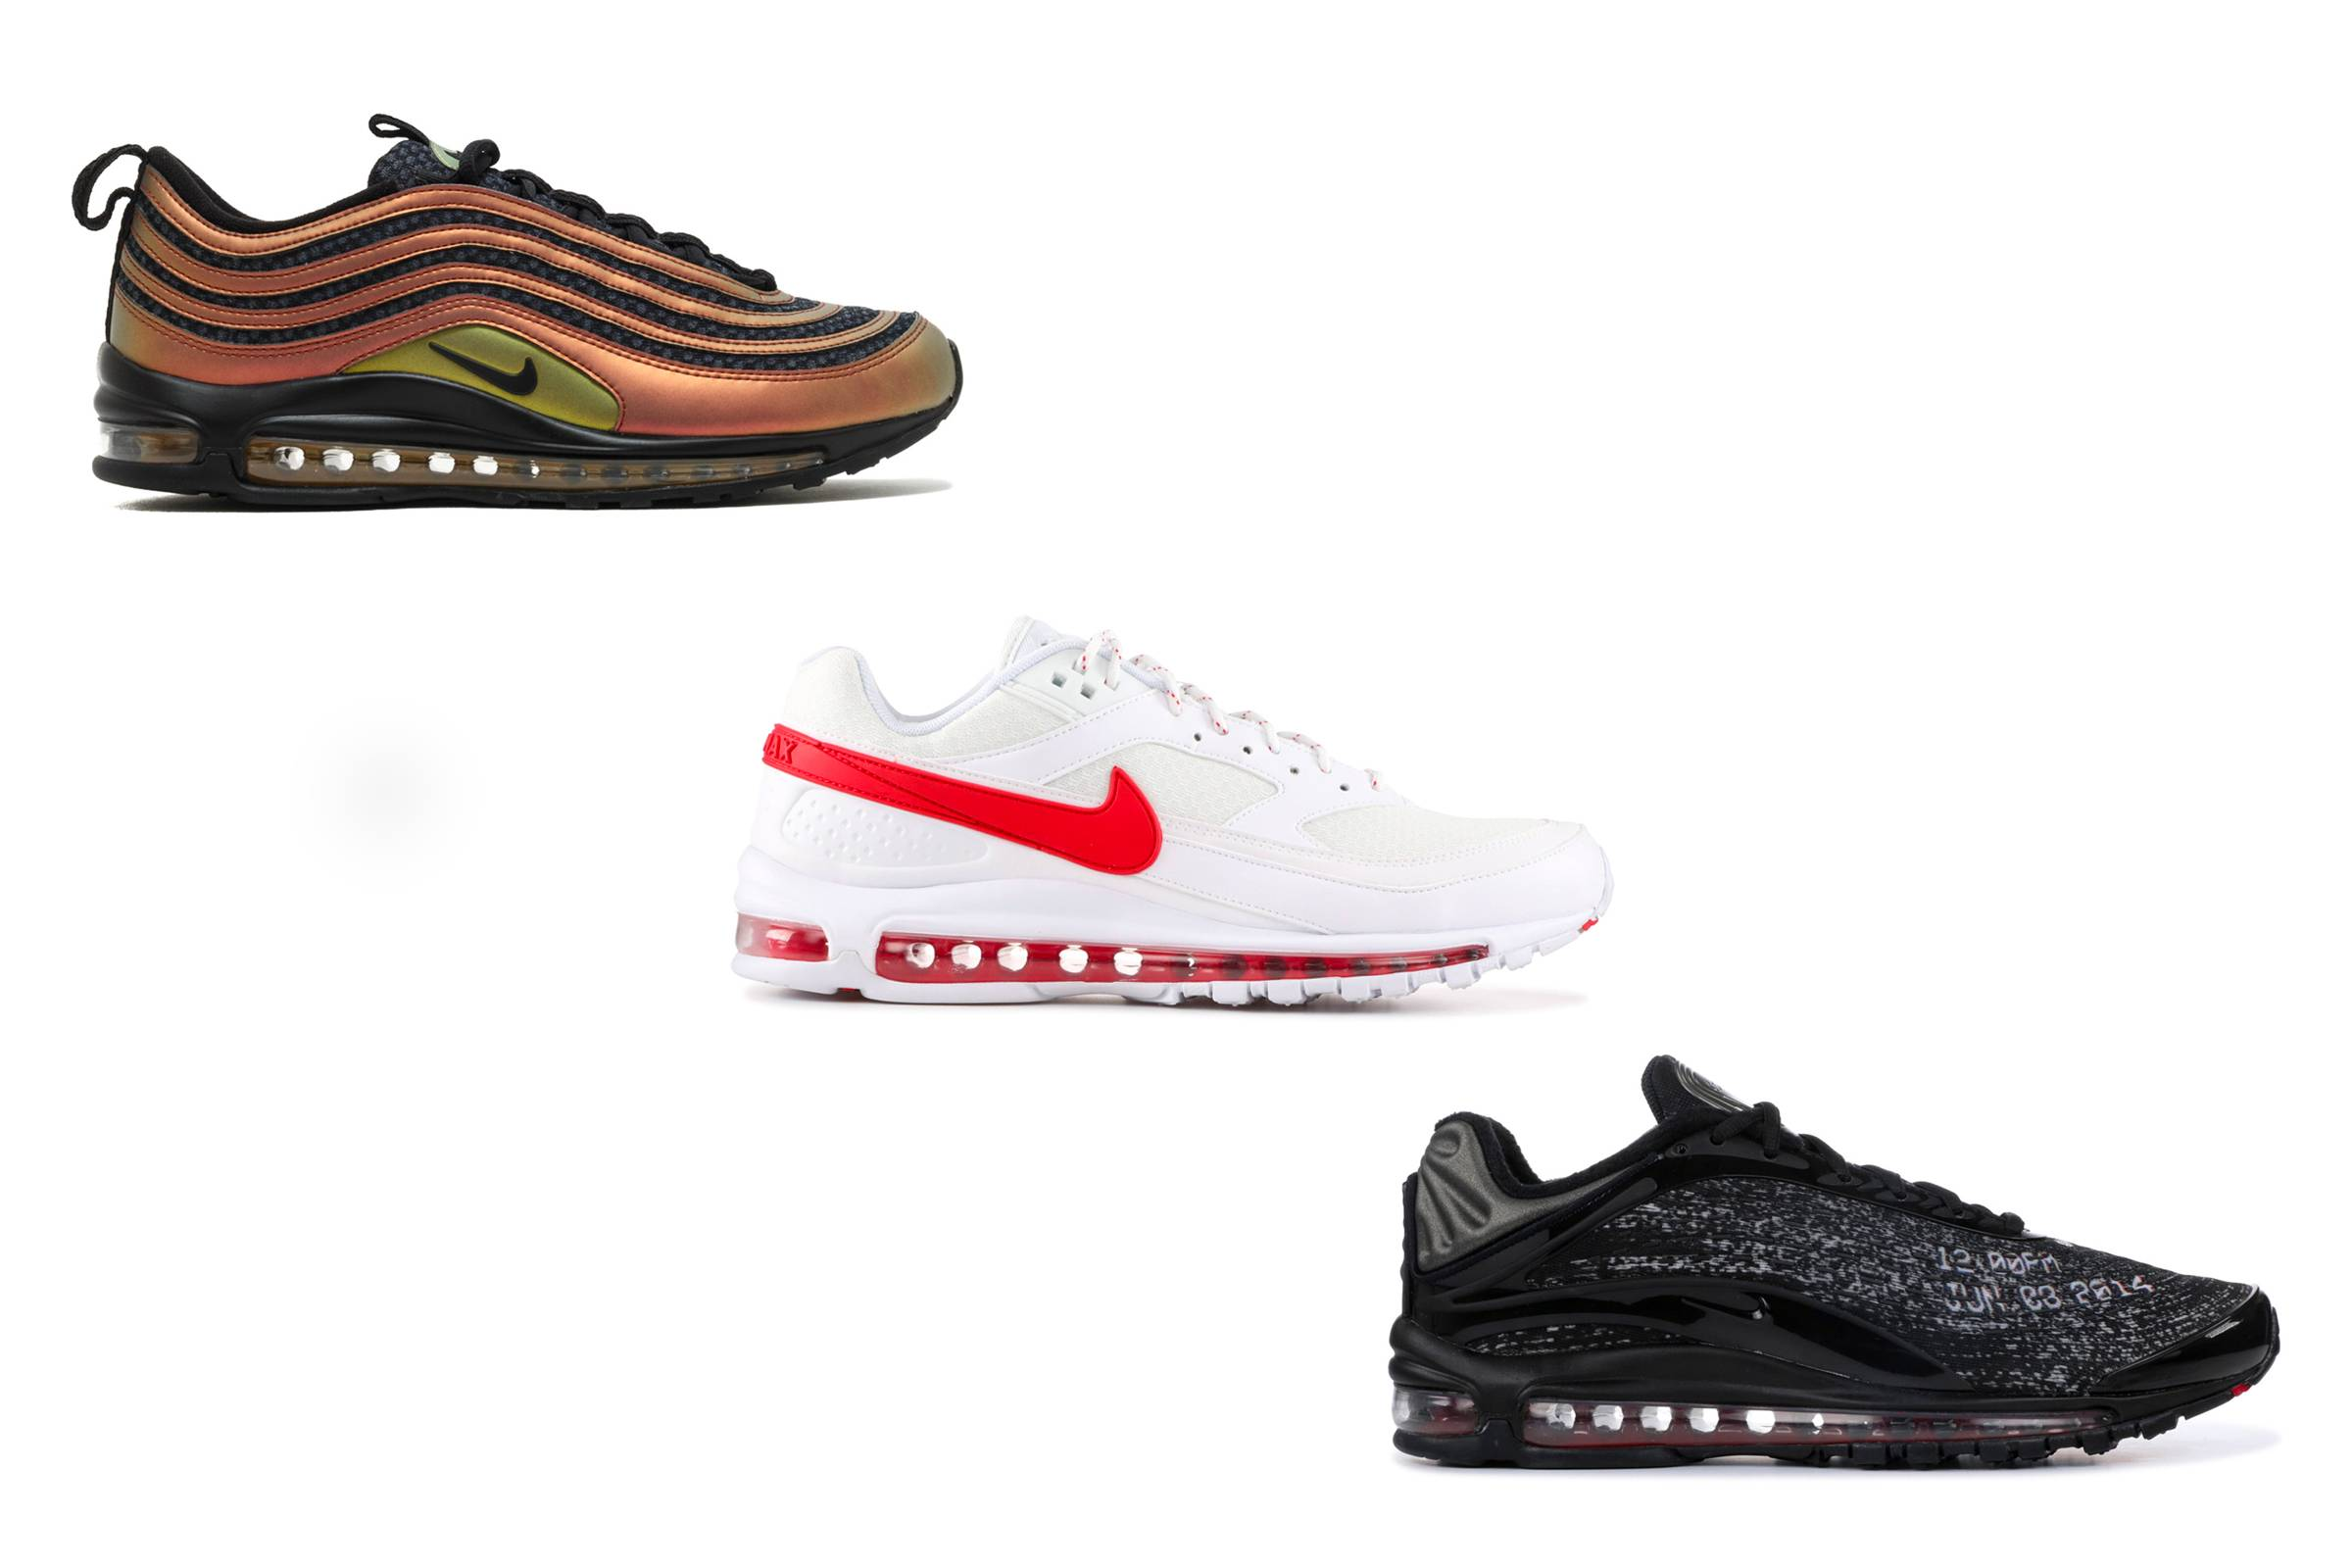 Skepta's Nike collaboration sneakers: The Air Max 97 Sk (top left), Air Max 97/BW (center) and Air Max Deluxe.